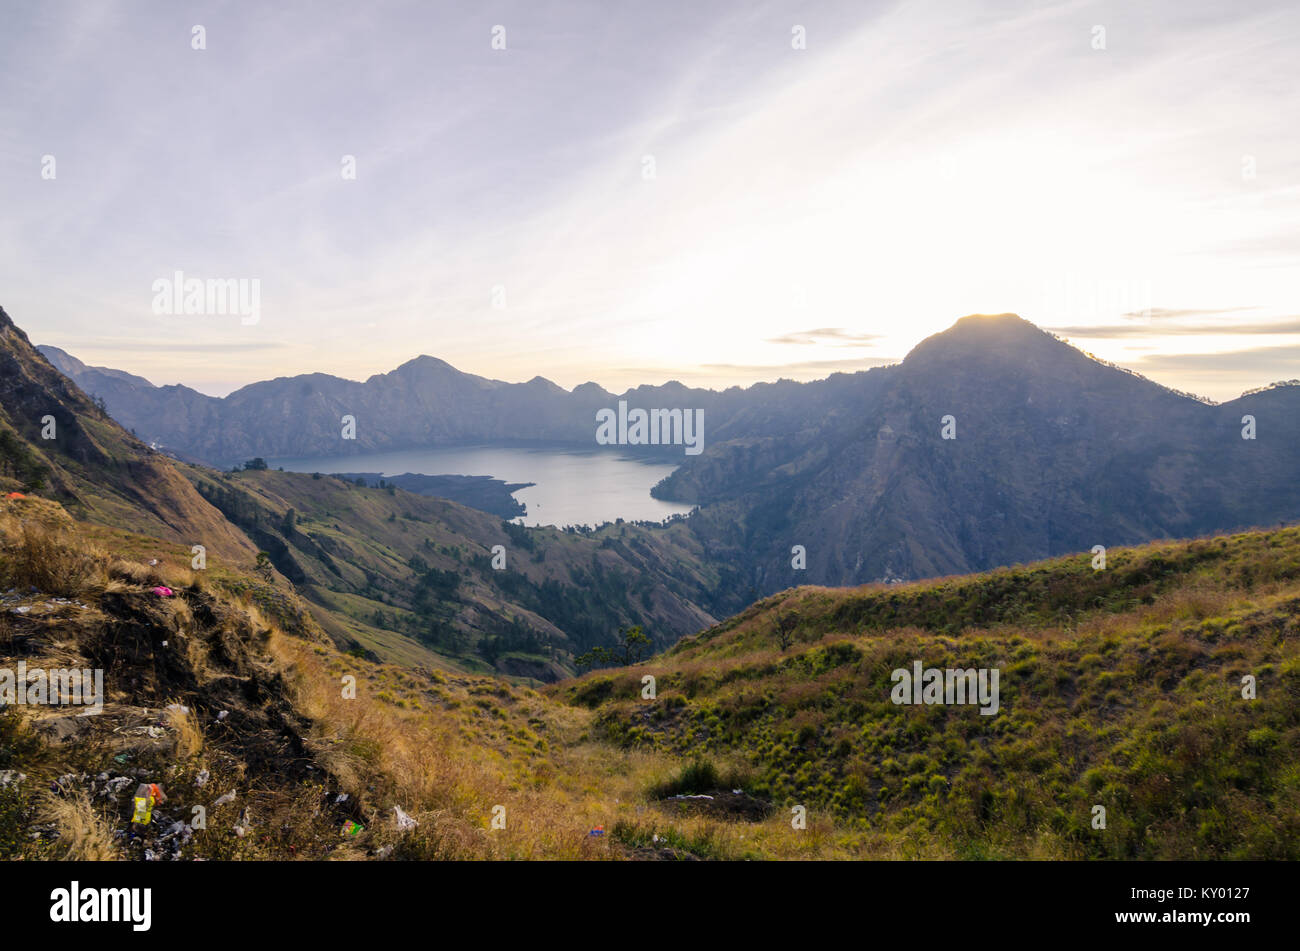 Volcano crater of Mount Rinjani. The mountain is in the Regency of North Lombok, West Nusa Tenggara and rises to - Stock Image